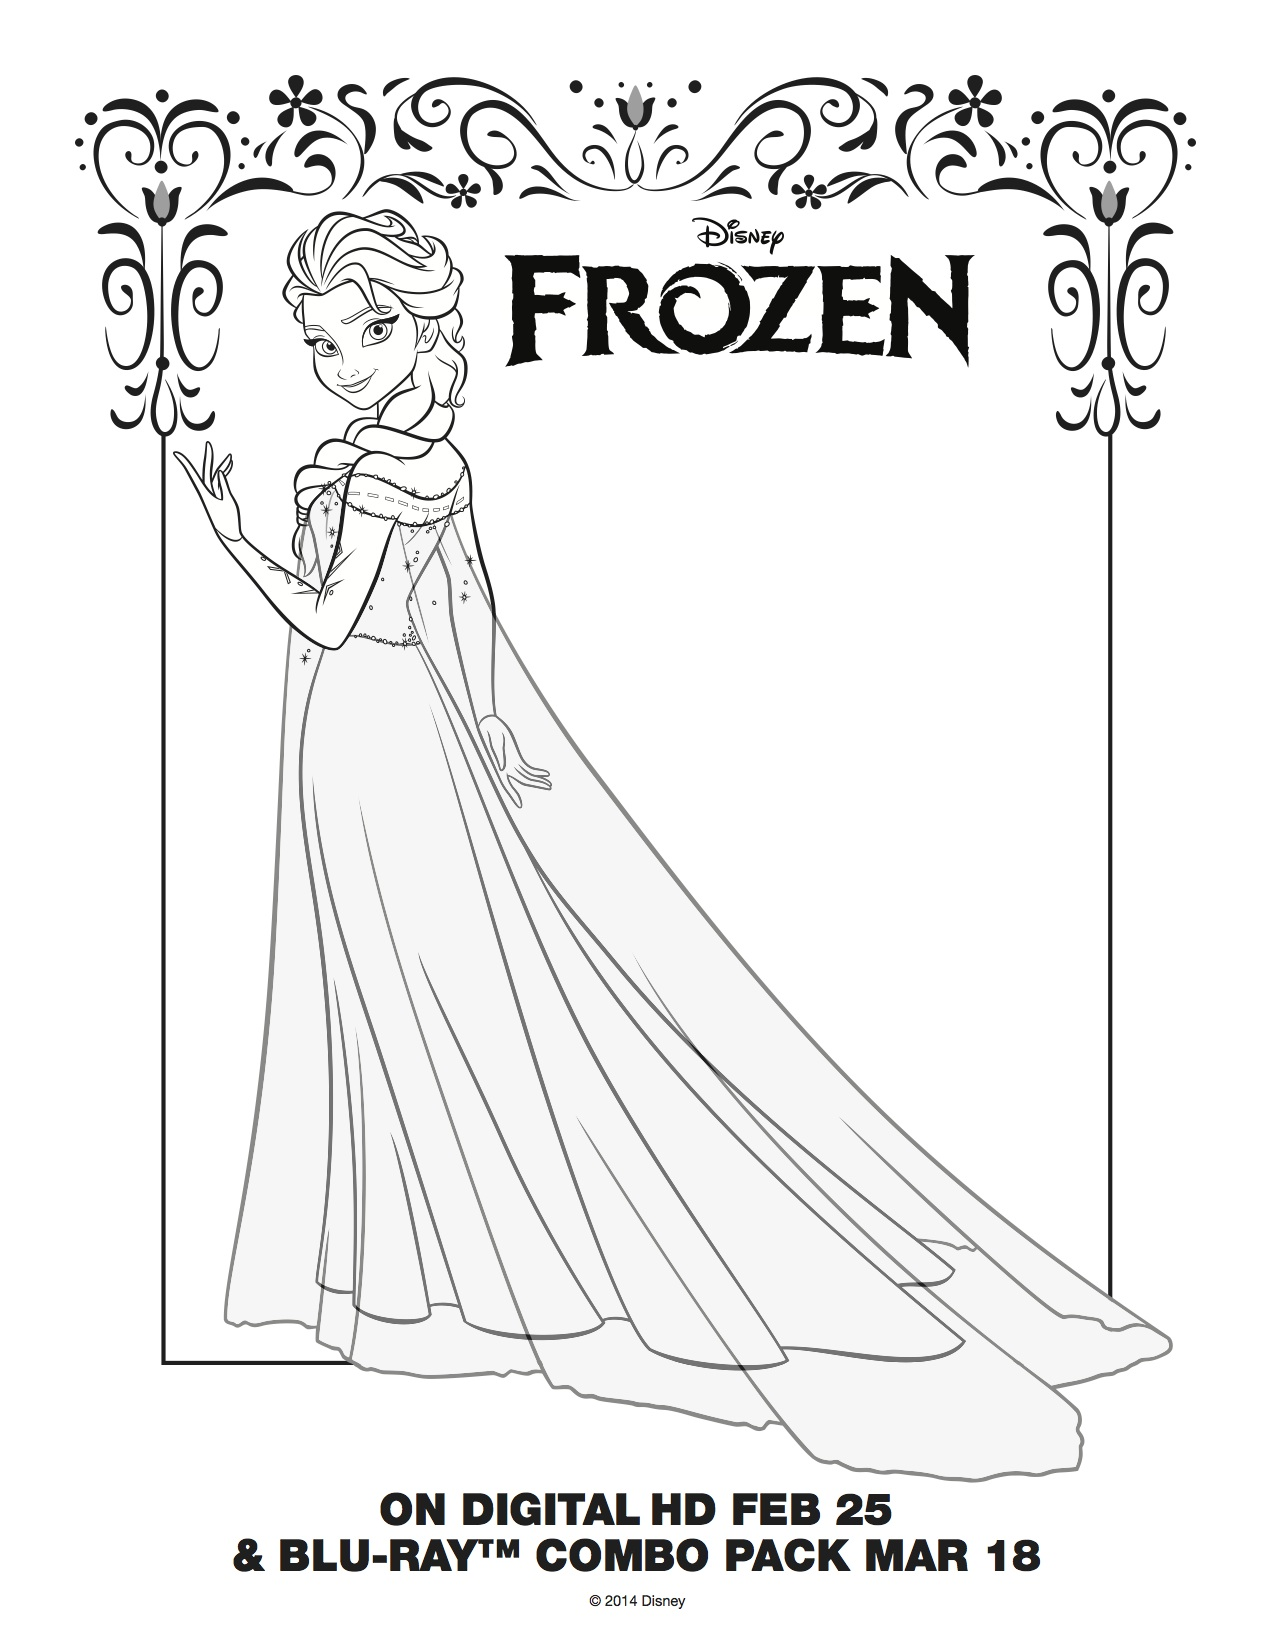 Frozen Elsa Coloring Page Frozen Photo 36726782 Fanpop Elsa Frozen Coloring Pages